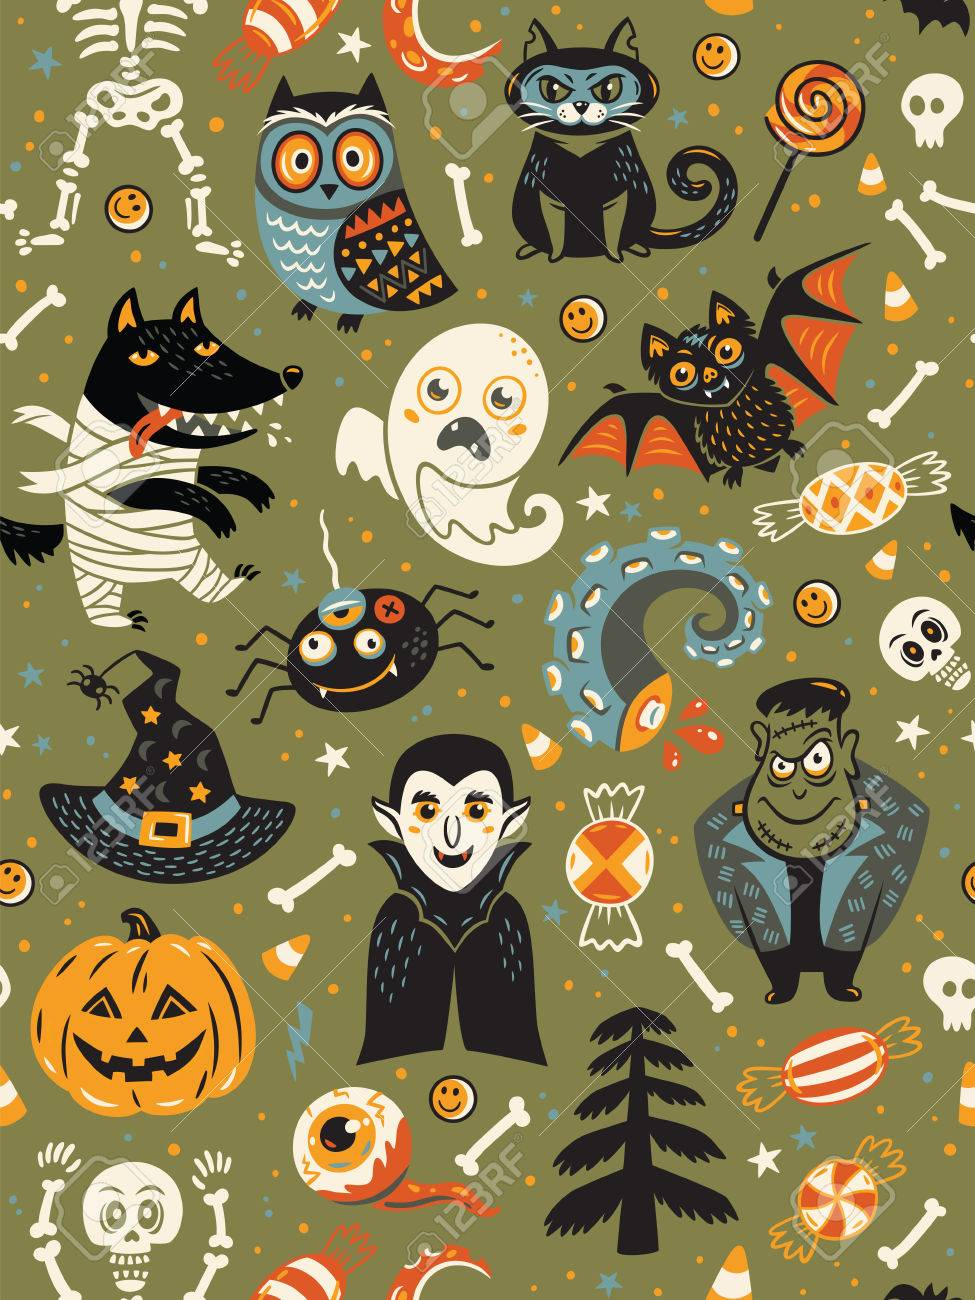 Cute Cartoon Halloween Pictures : cartoon, halloween, pictures, Cartoon, Halloween, Seamless, Pattern, Green, Background..., Royalty, Cliparts,, Vectors,, Stock, Illustration., Image, 62911234.